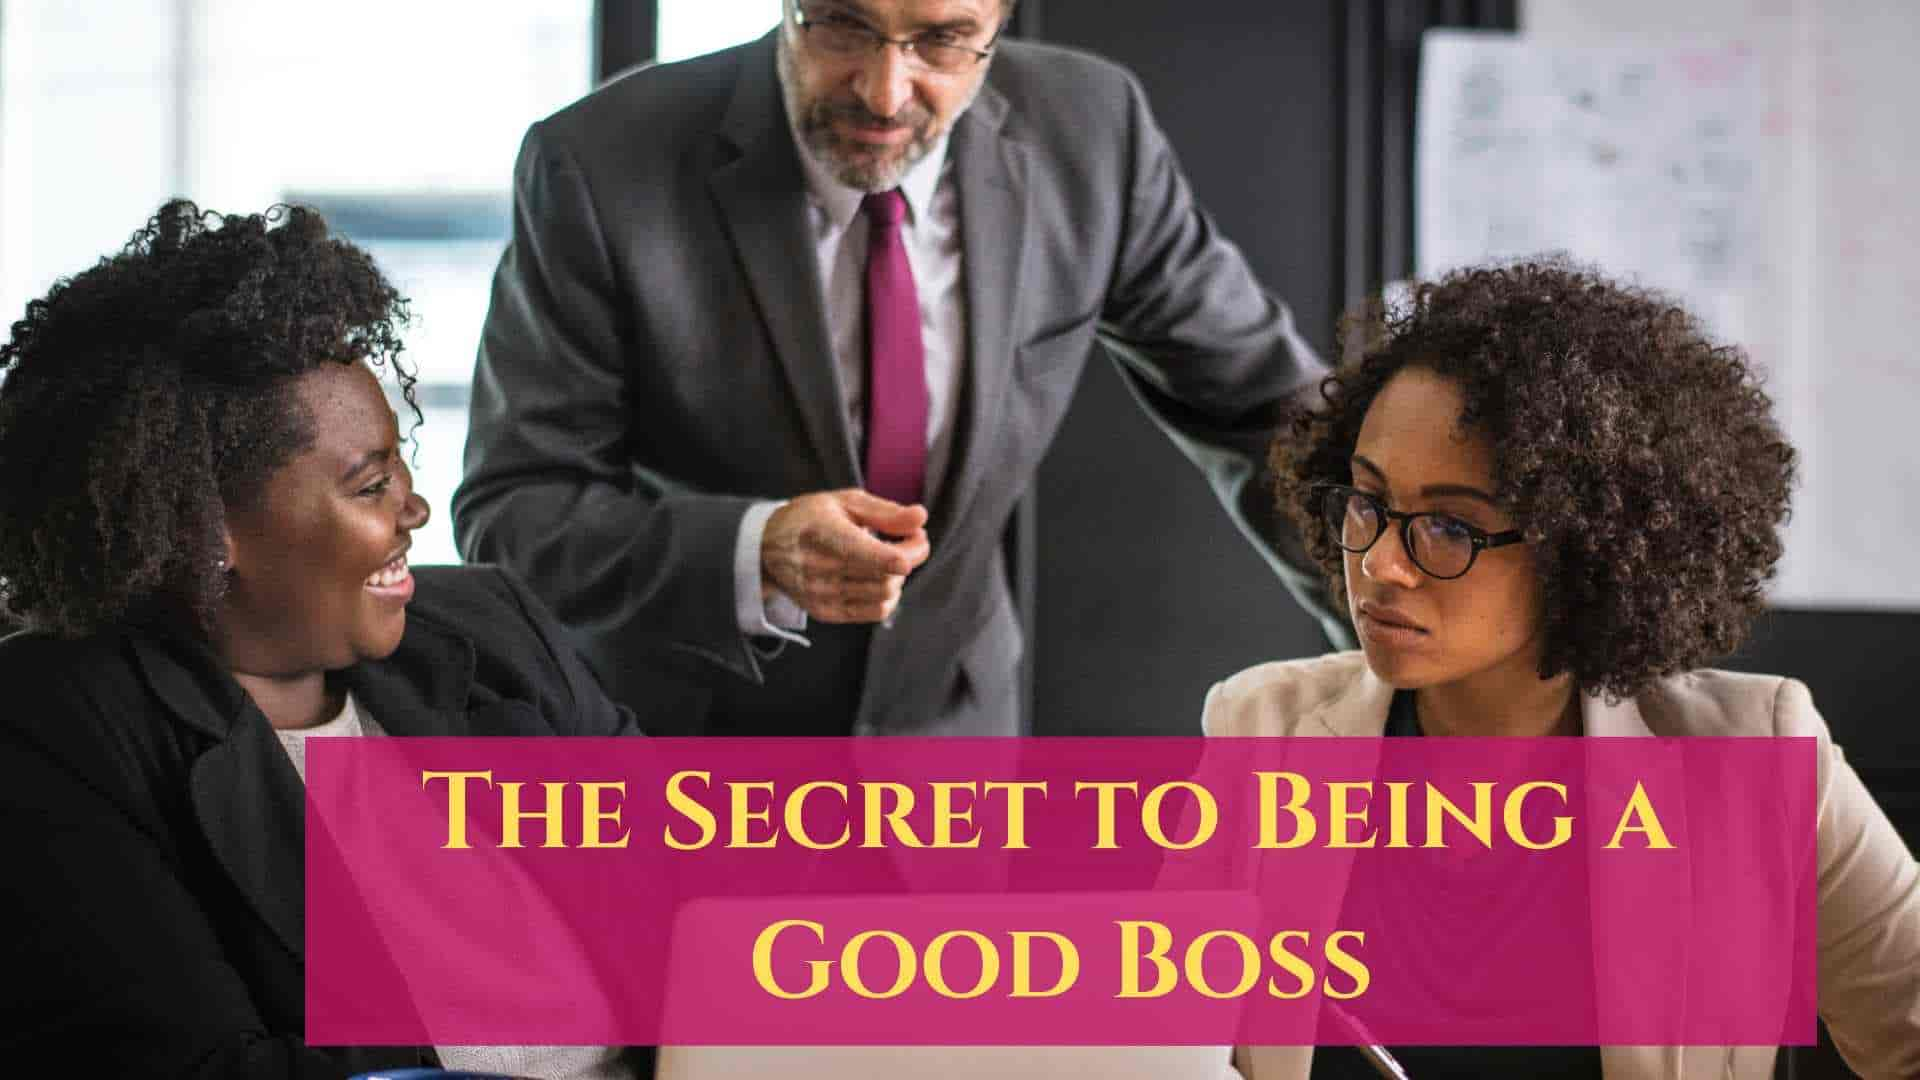 The Secret to Being a Good Boss